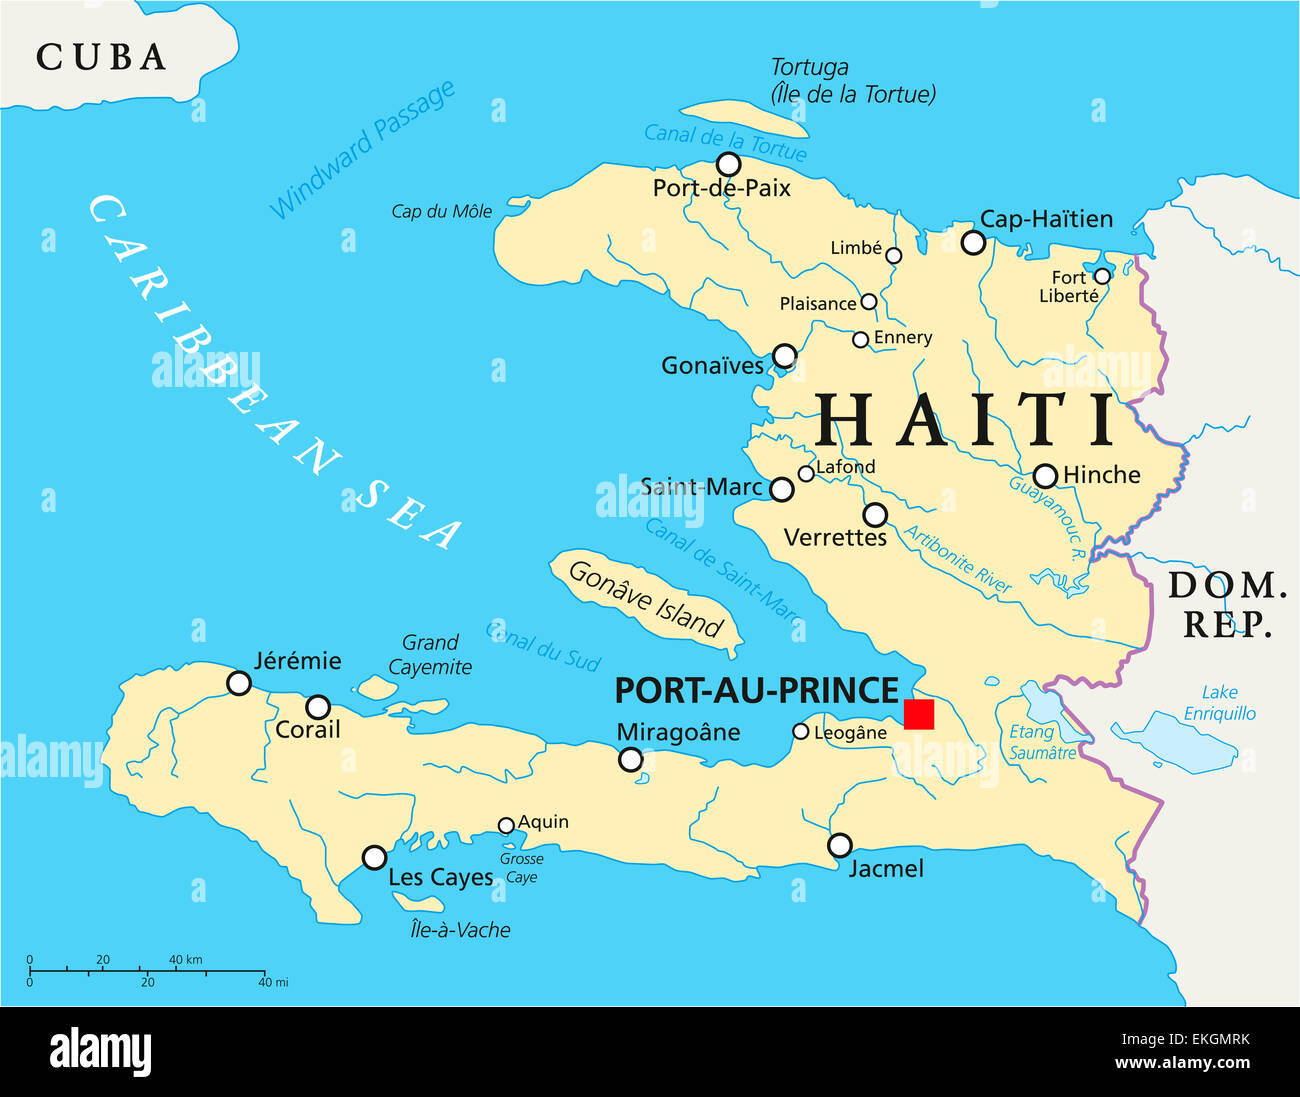 Haiti Political Map Stock Photo 80887511 Alamy